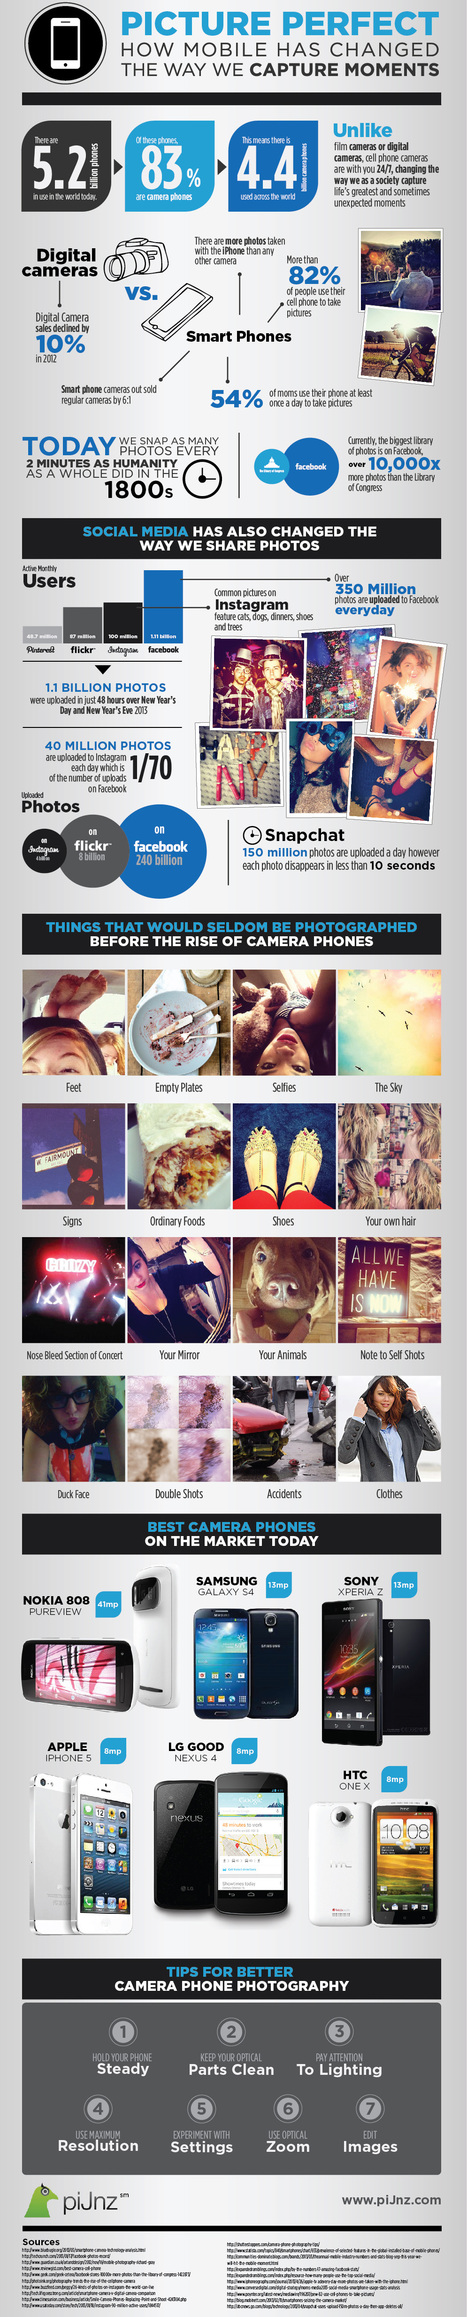 INFOGRAPHIC: How Mobile Has Changed the Way We Capture Moments | Cloud Central | Scoop.it